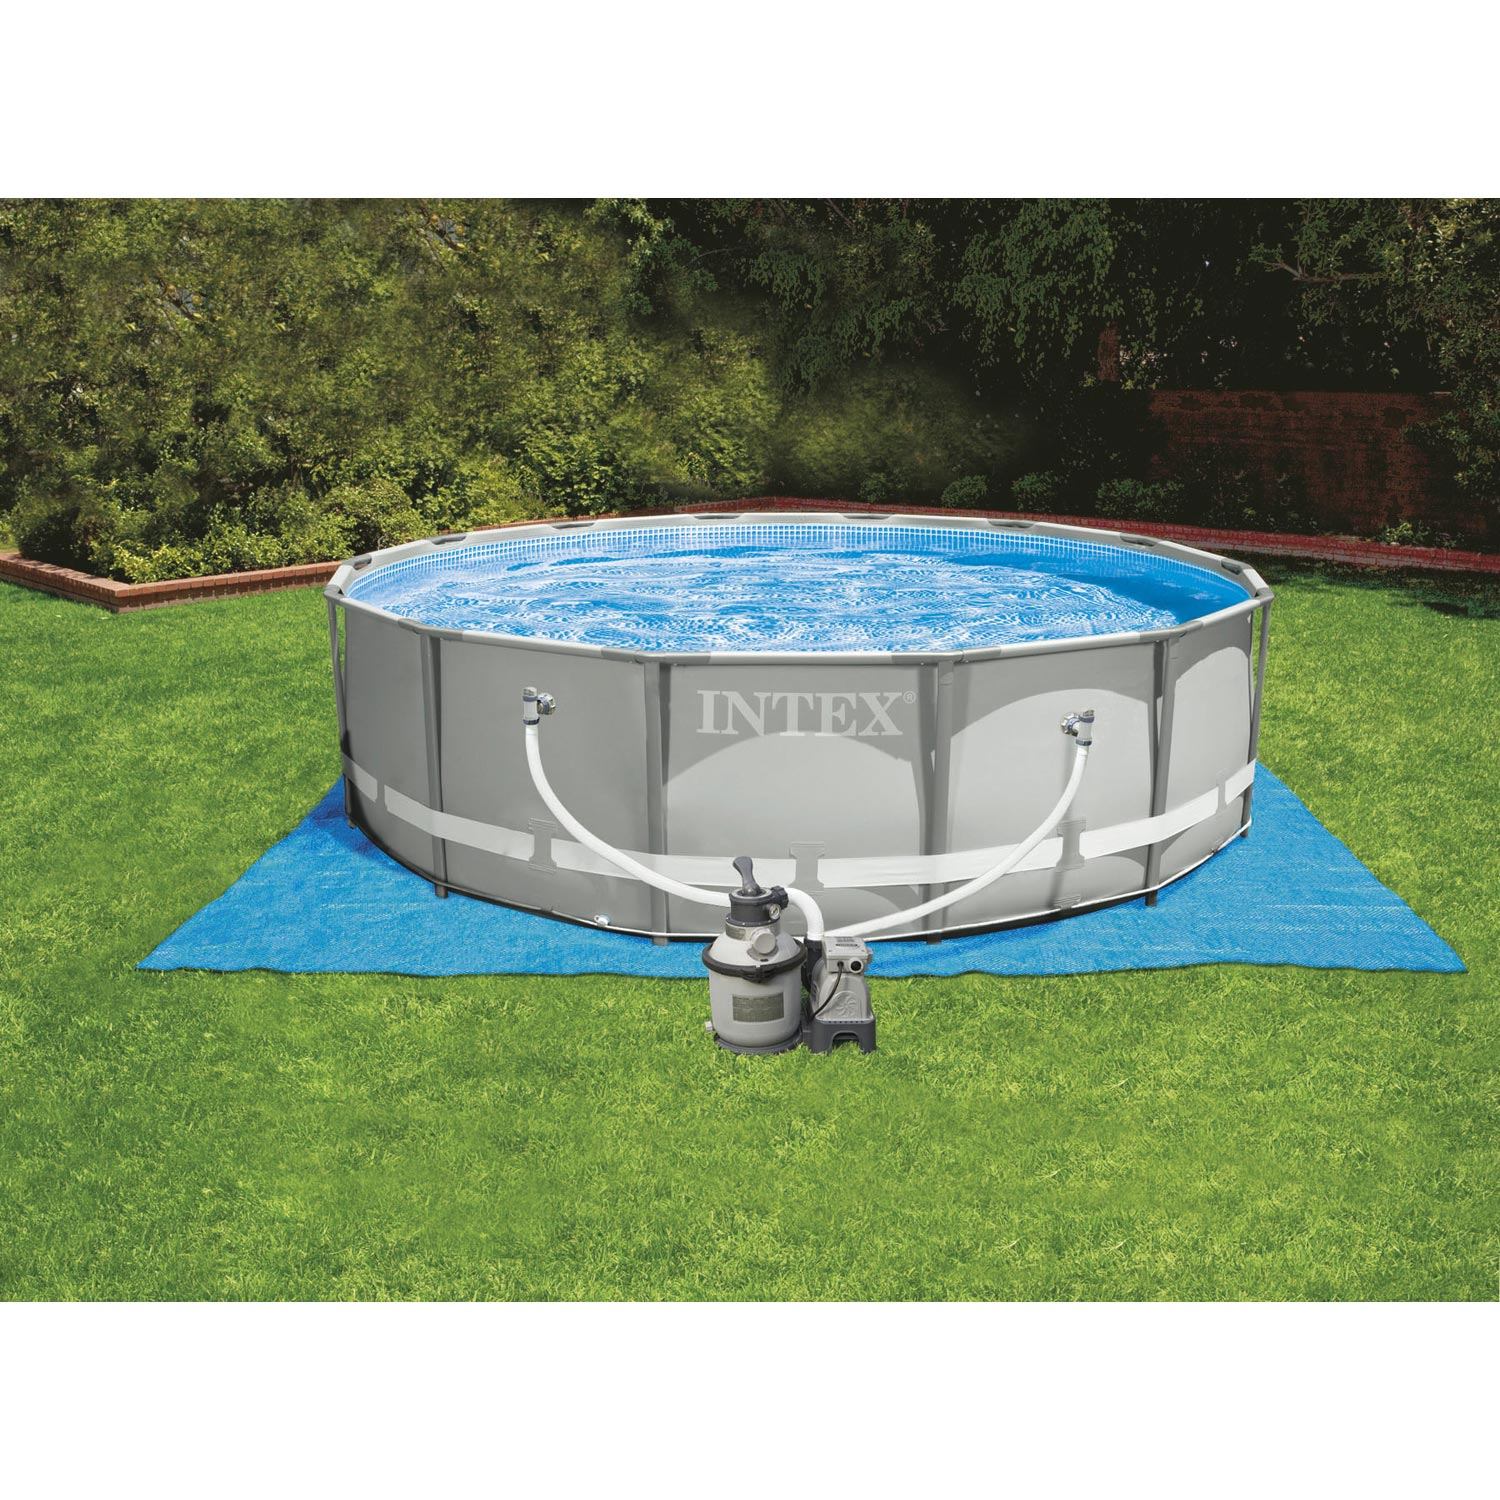 Piscine hors sol autoportante tubulaire ultra frame intex for Hors sol tubulaire